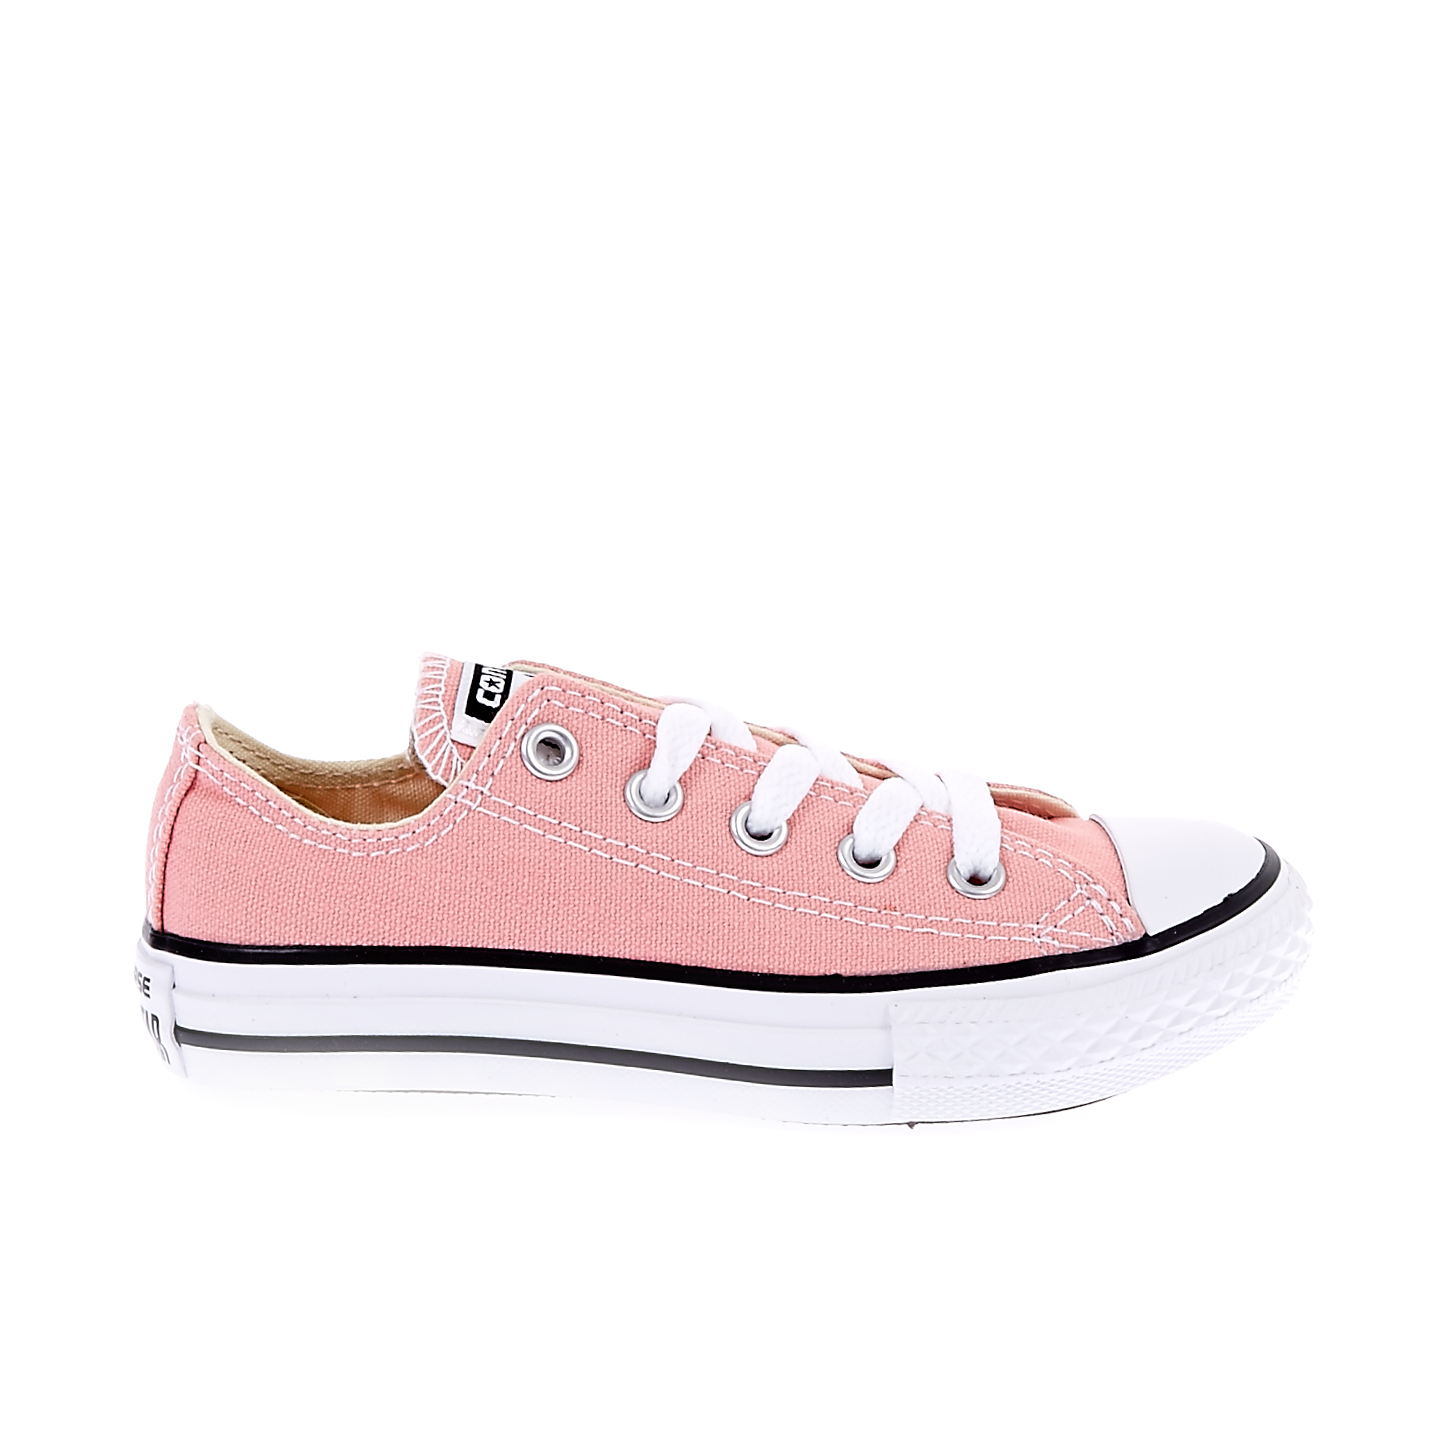 CONVERSE – Παιδικά παπούτσια Chuck Taylor All Star Ox ροζ